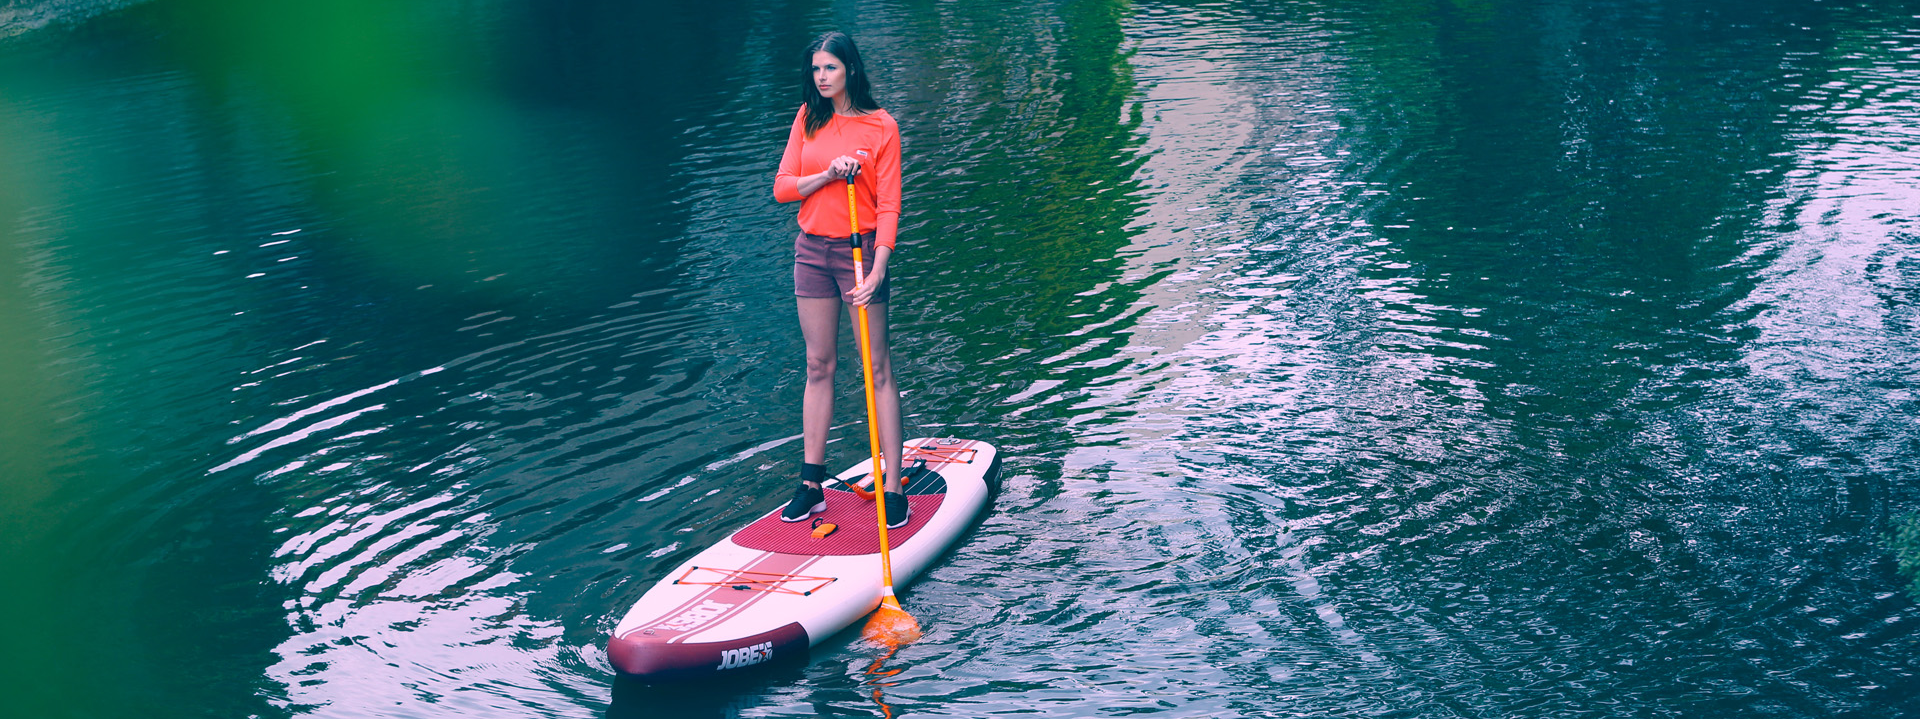 Stand Up Paddle Board kaufen-Kaufberater 2